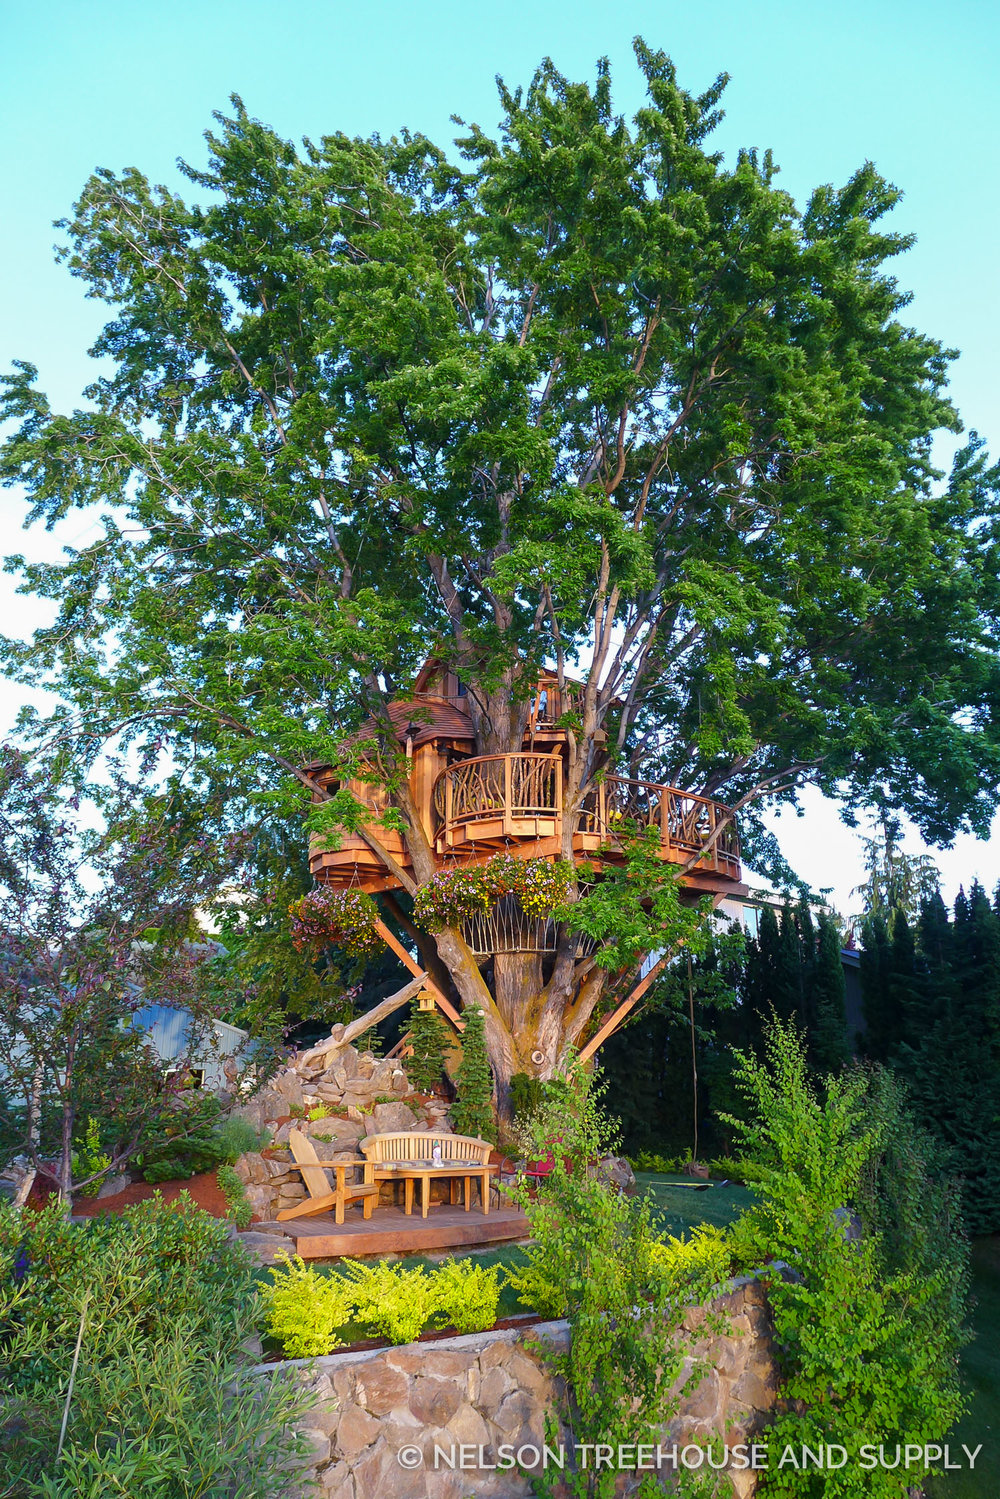 Nelson Treehouse Mindbending Maple